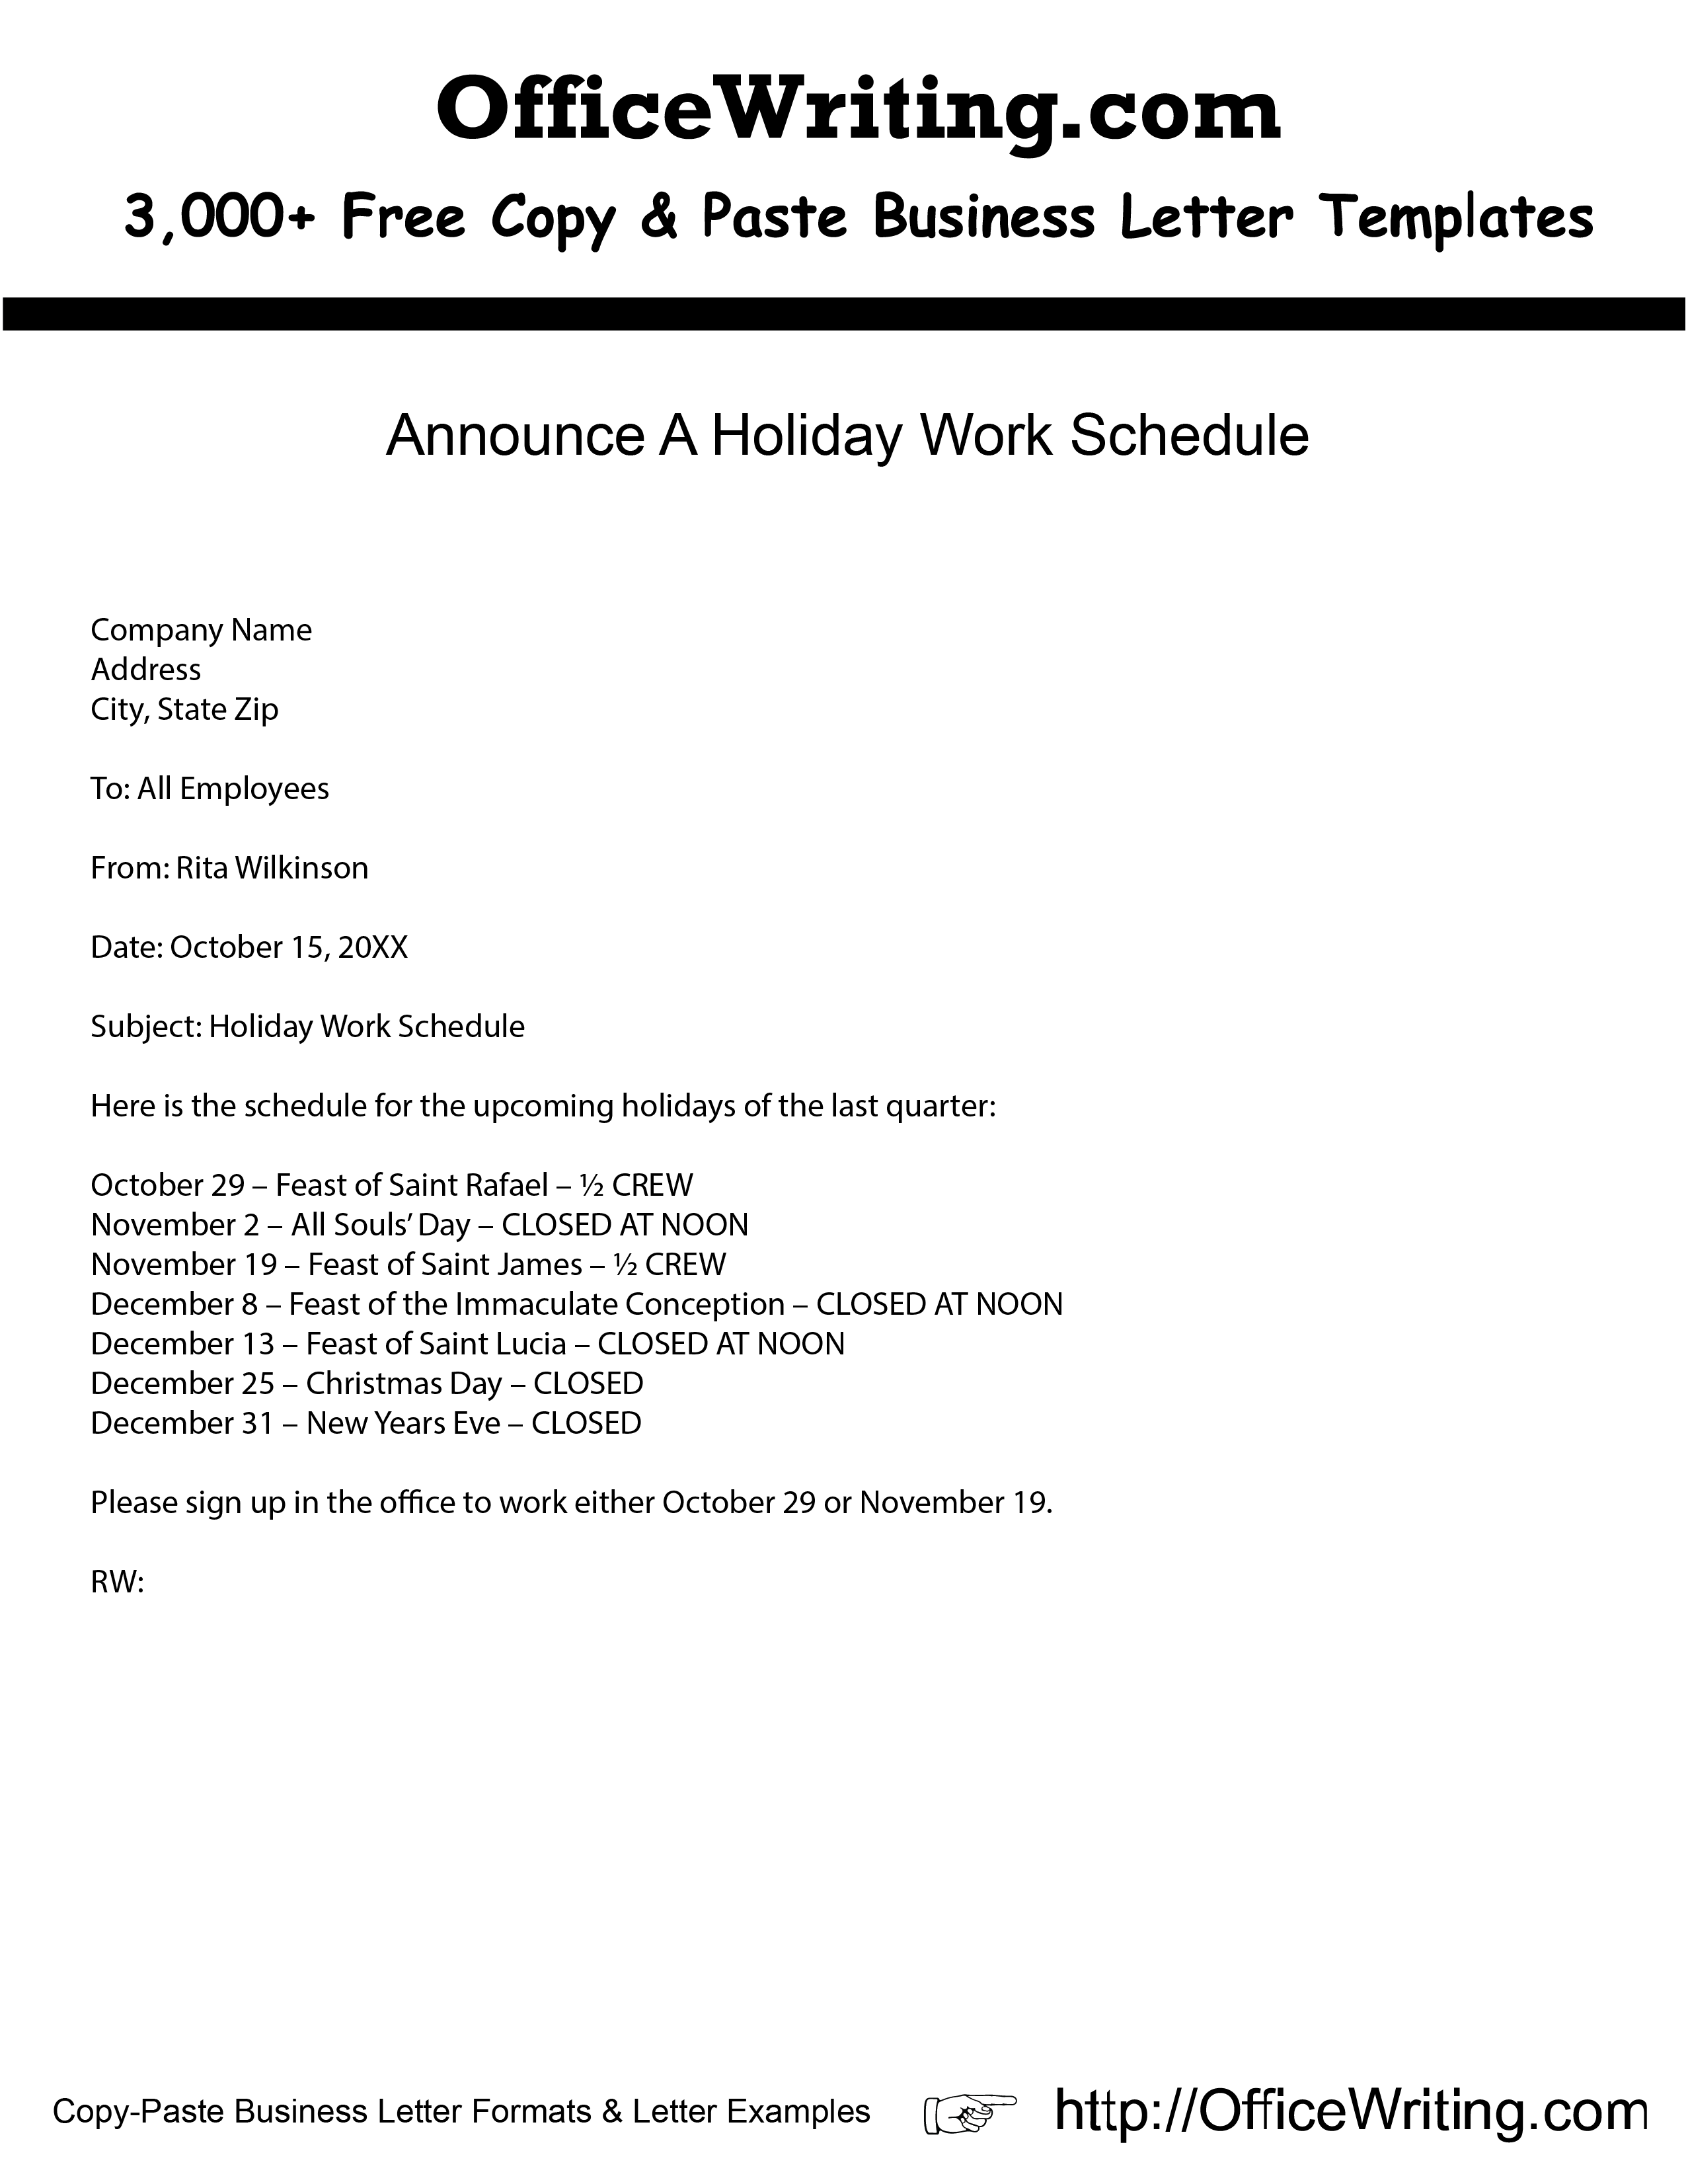 email to staff about christmas shutdown example